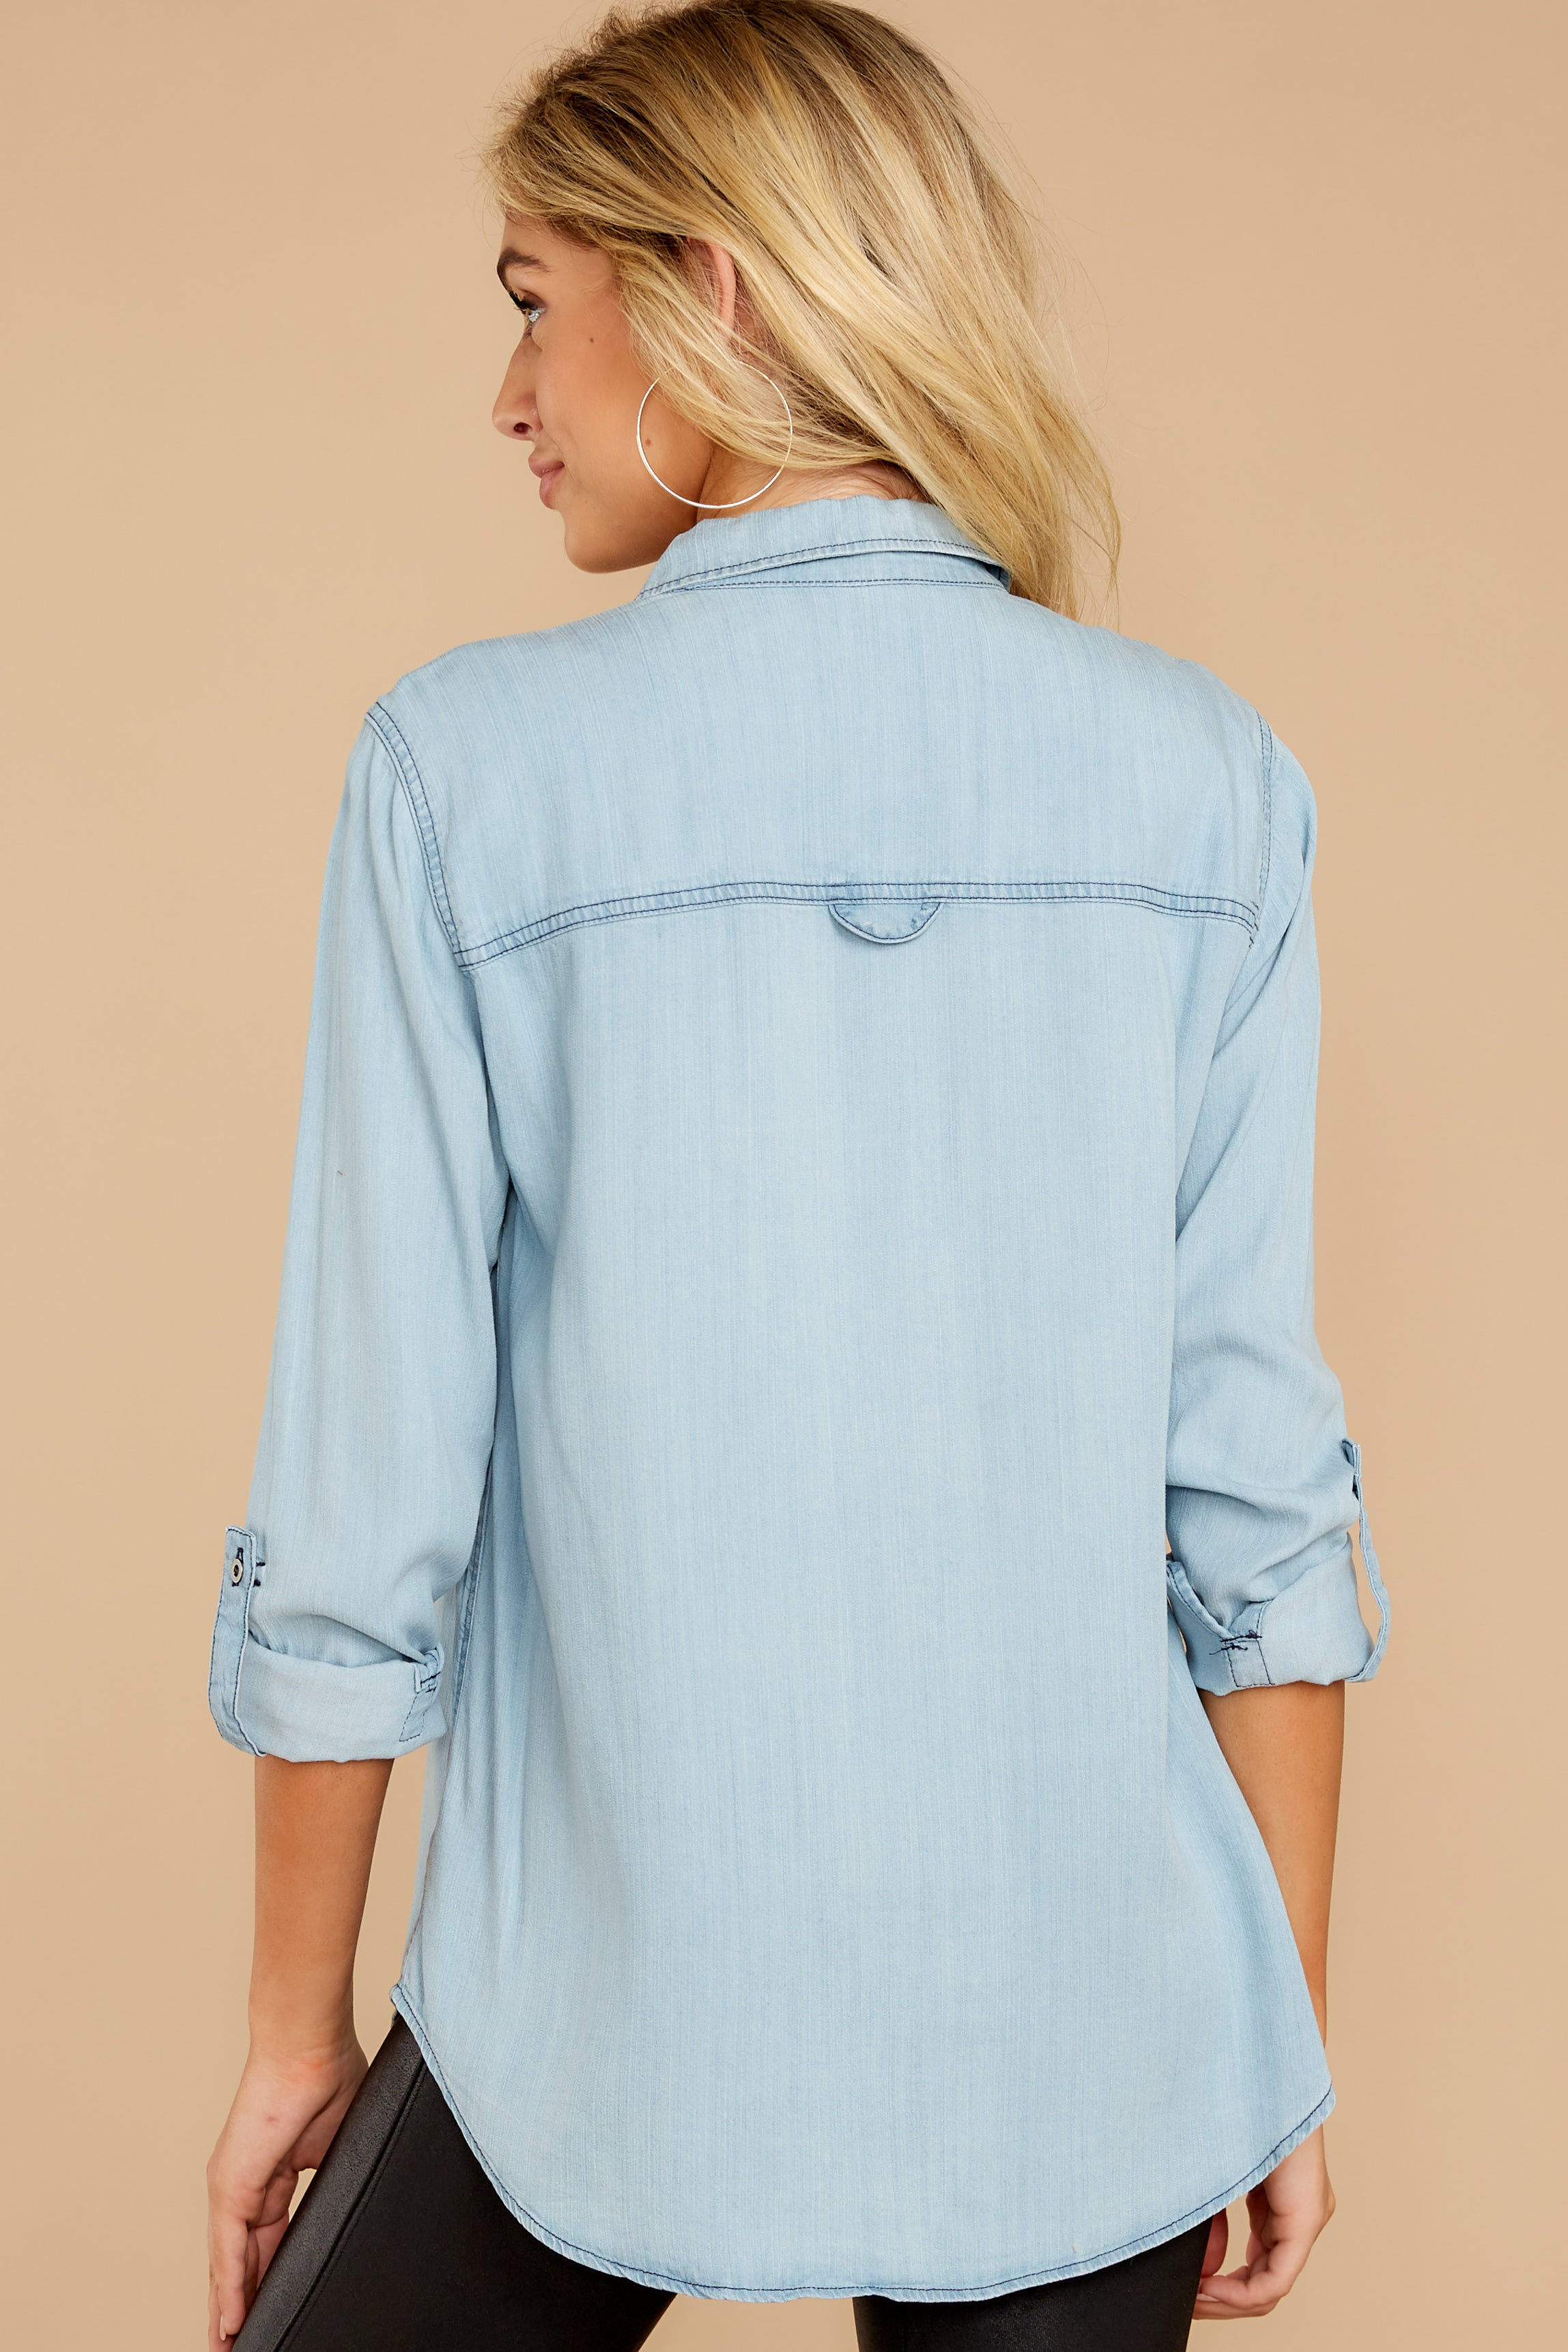 8 Wander Free Light Chambray Button Up Top at reddressboutique.com